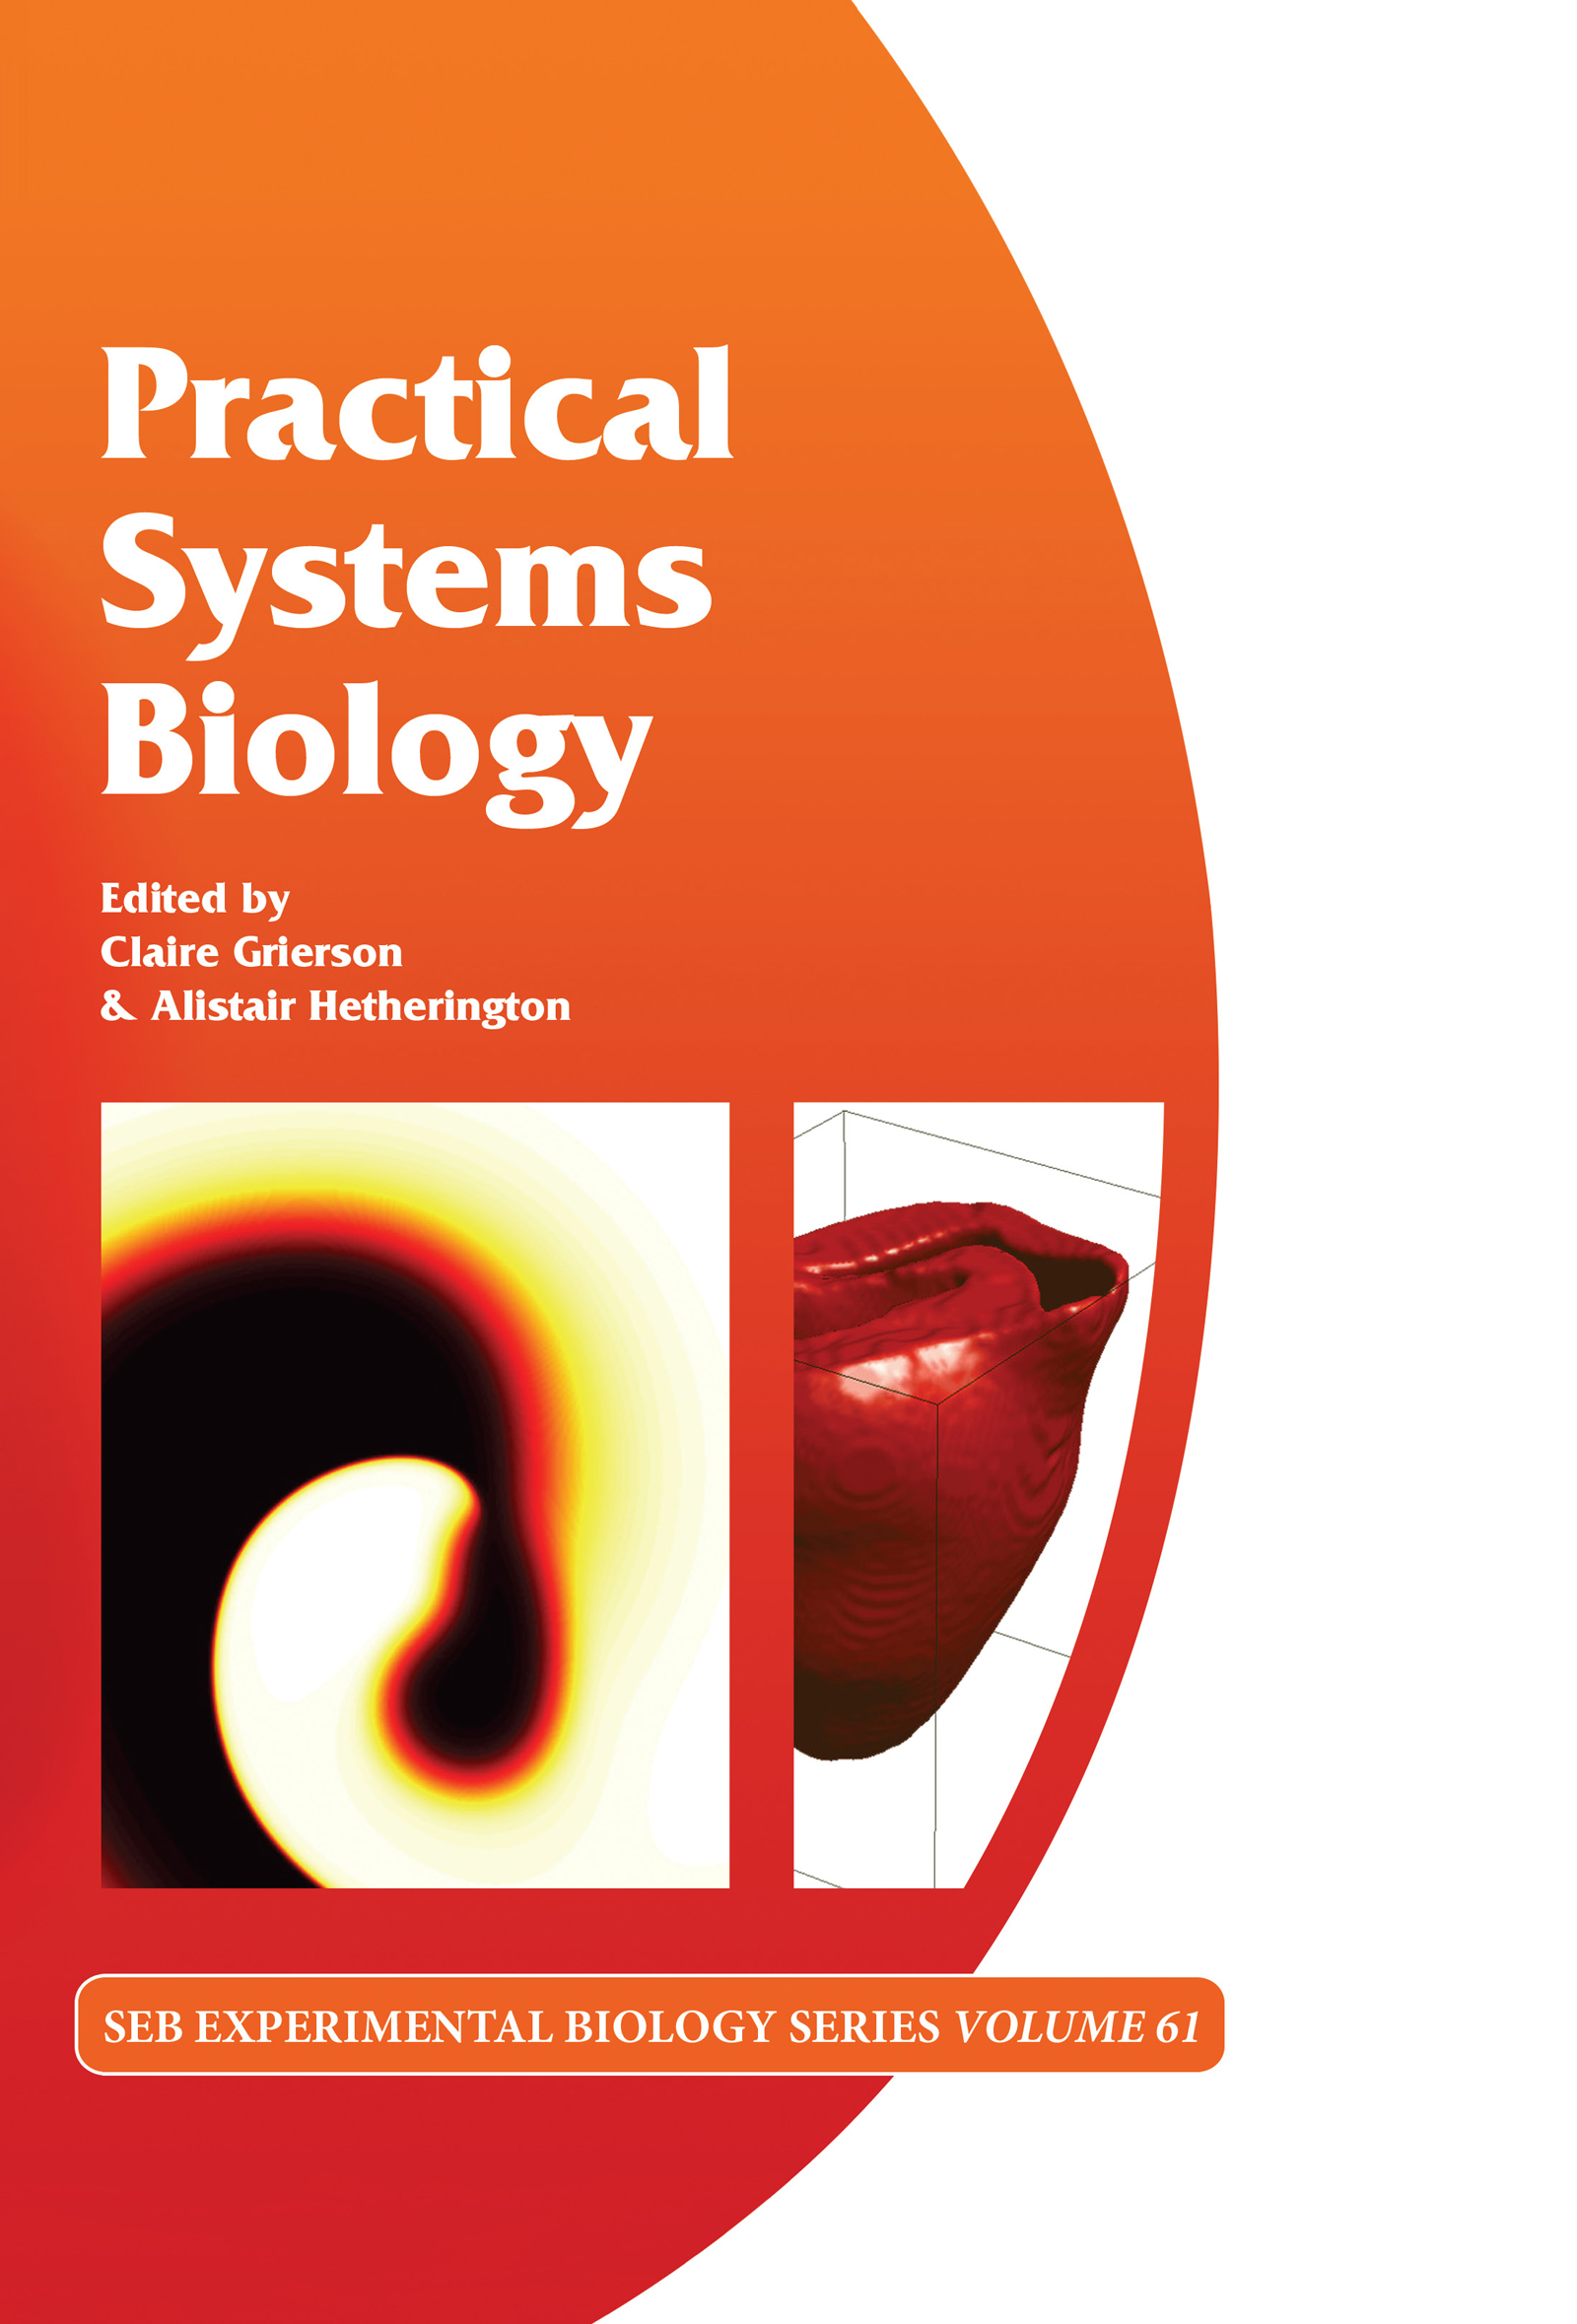 Practical Systems Biology